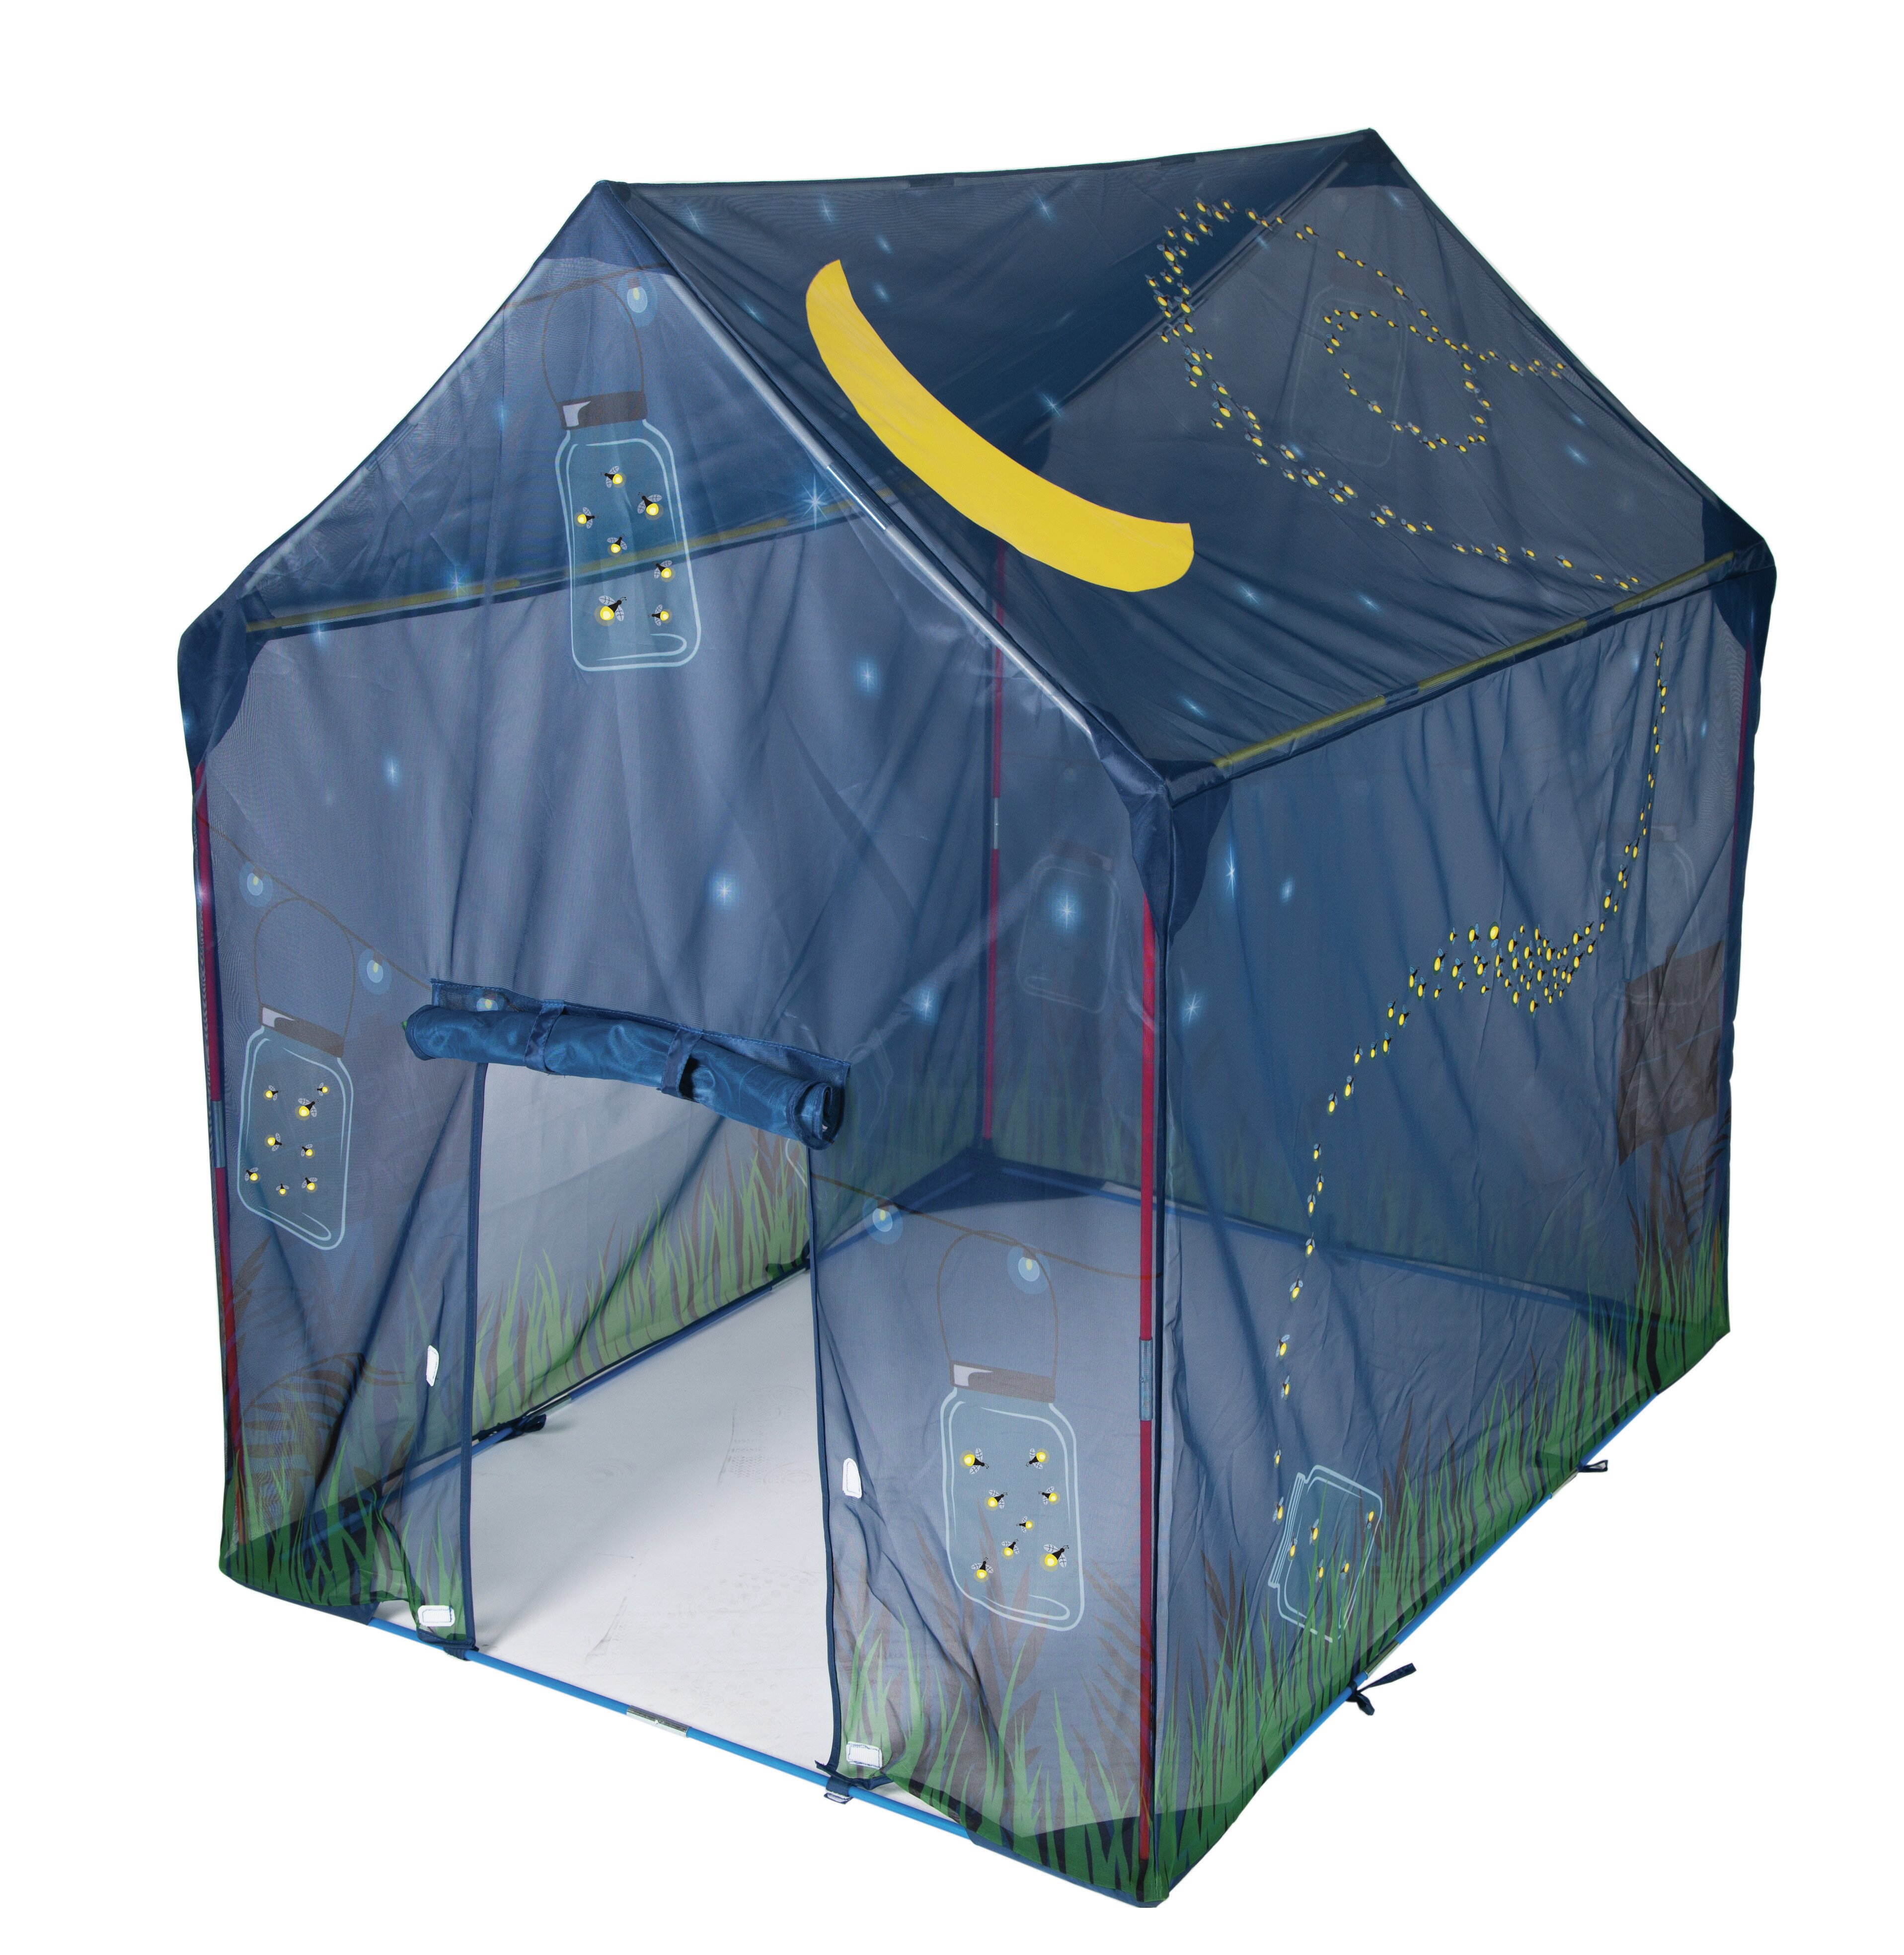 Pacific Play Tents Glow in The Dark Firefly Playhouse | Wayfair